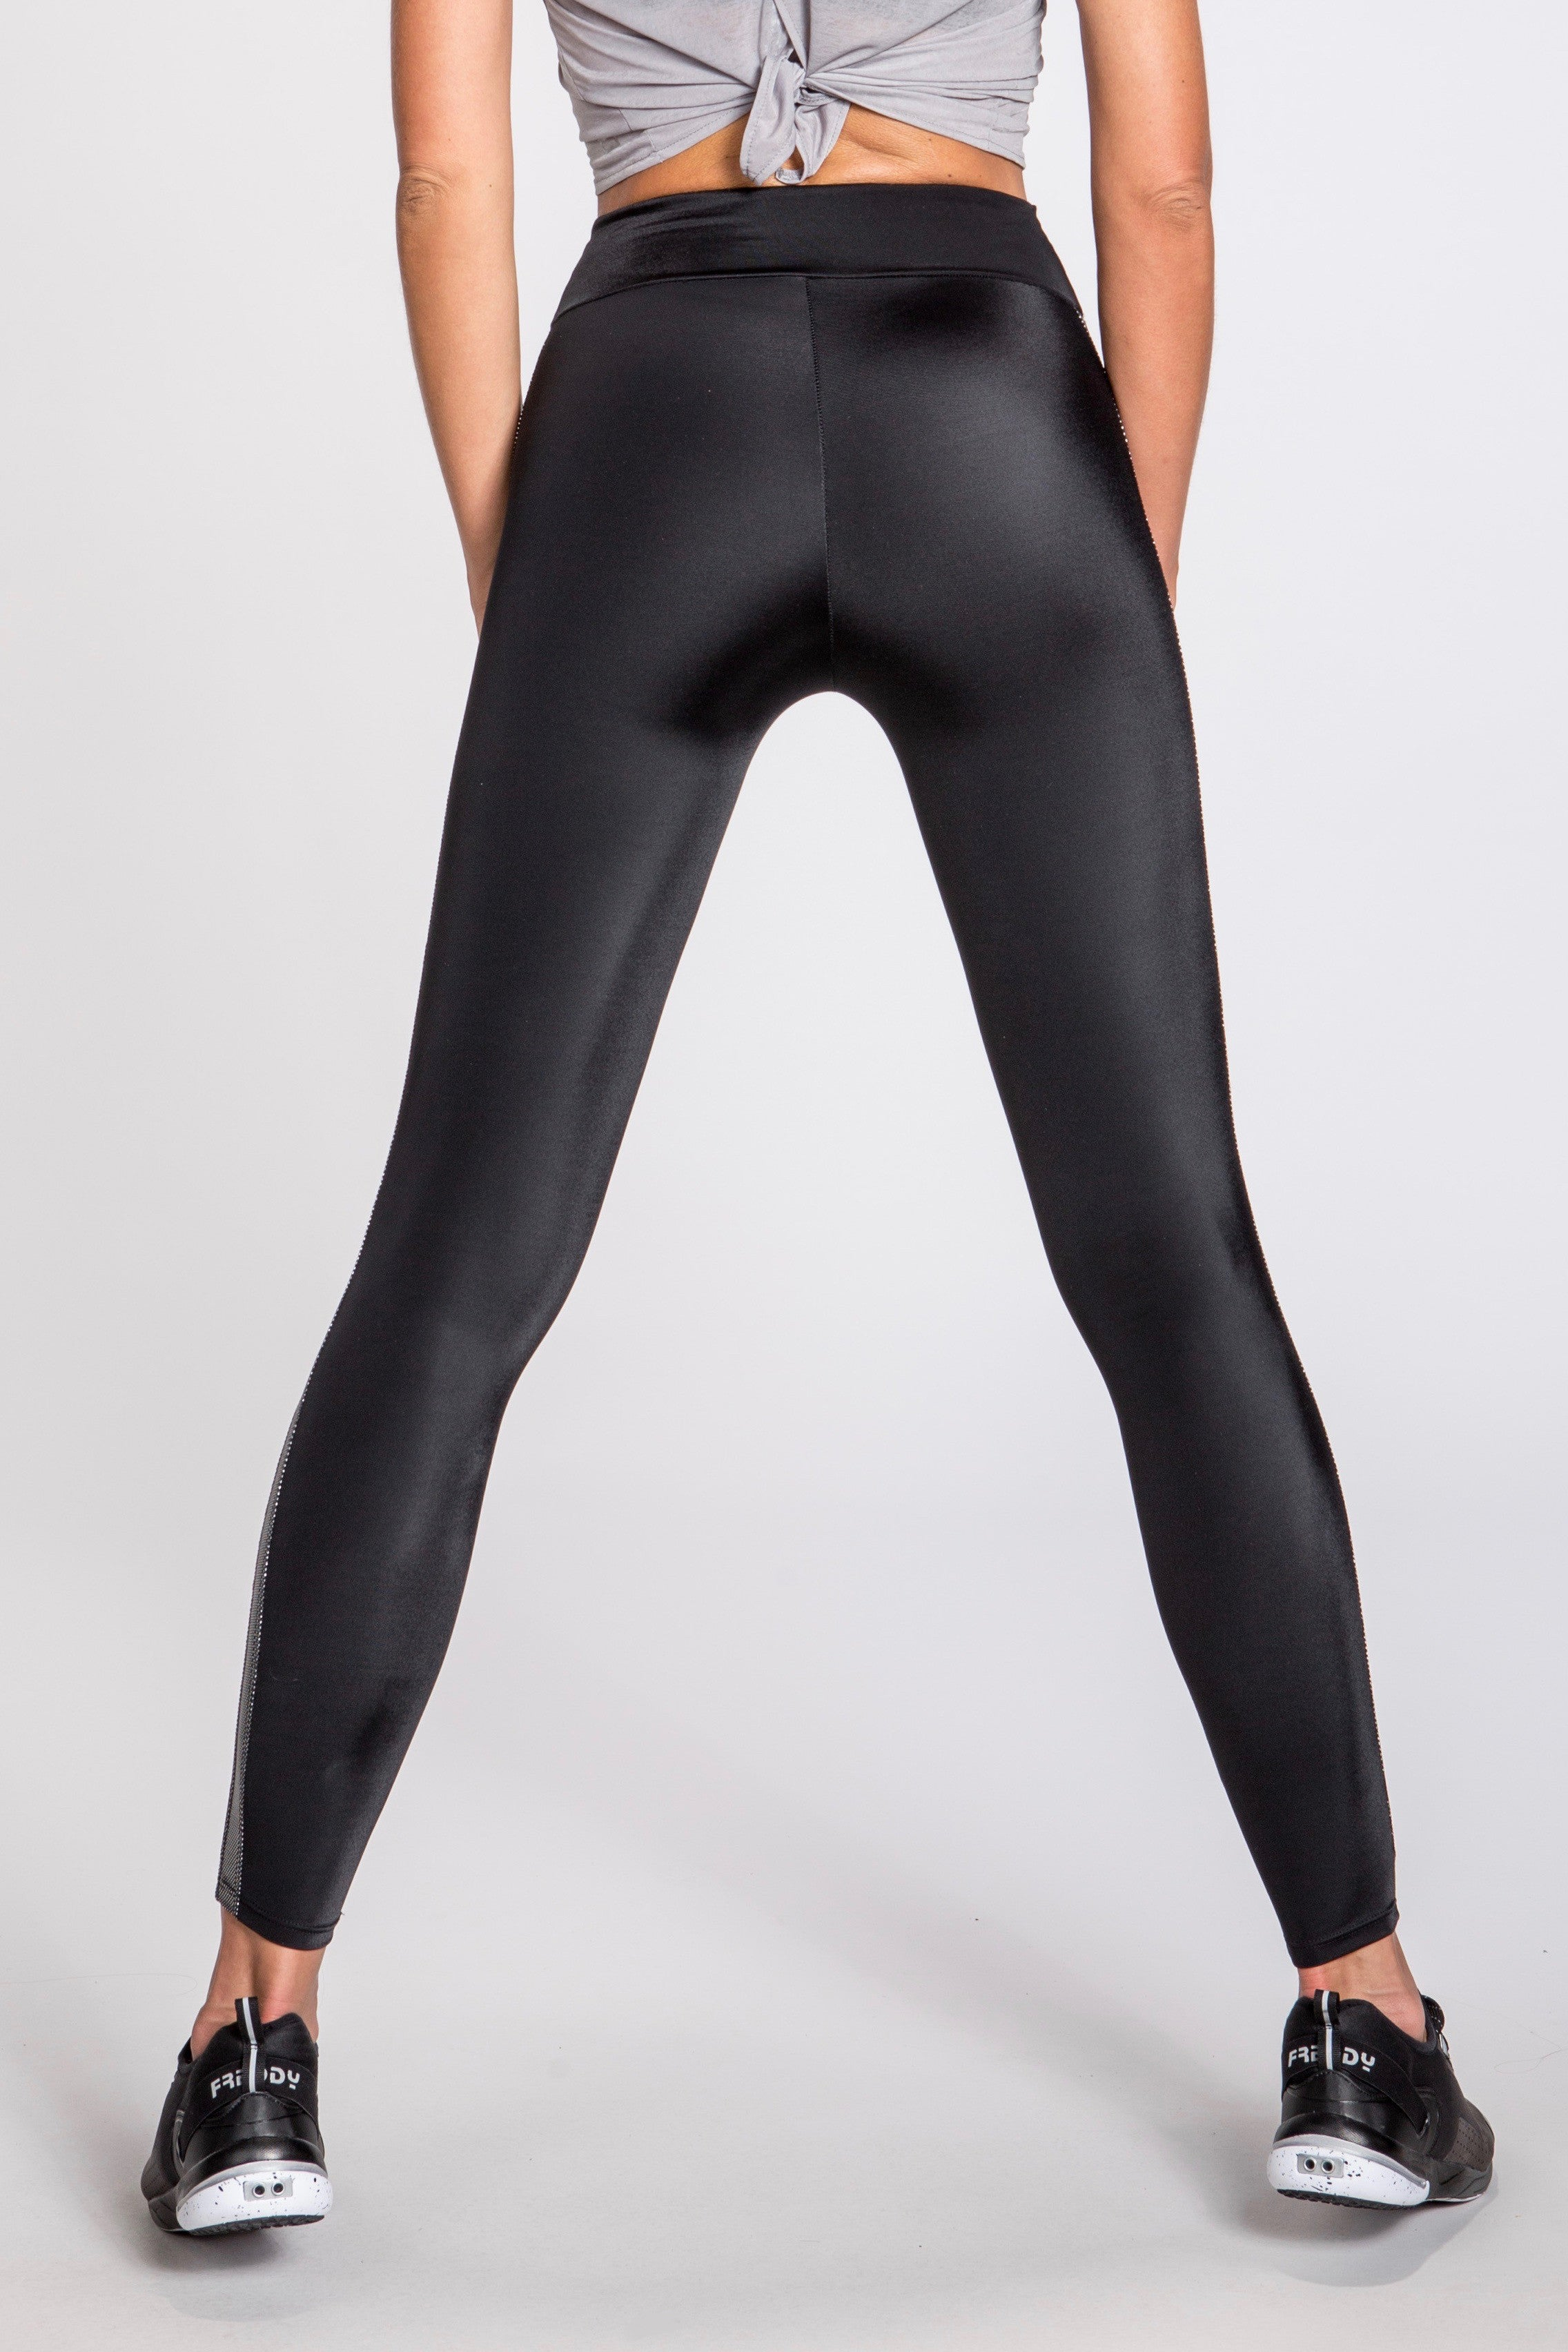 Nikita Combat Leggings- Black/Silver